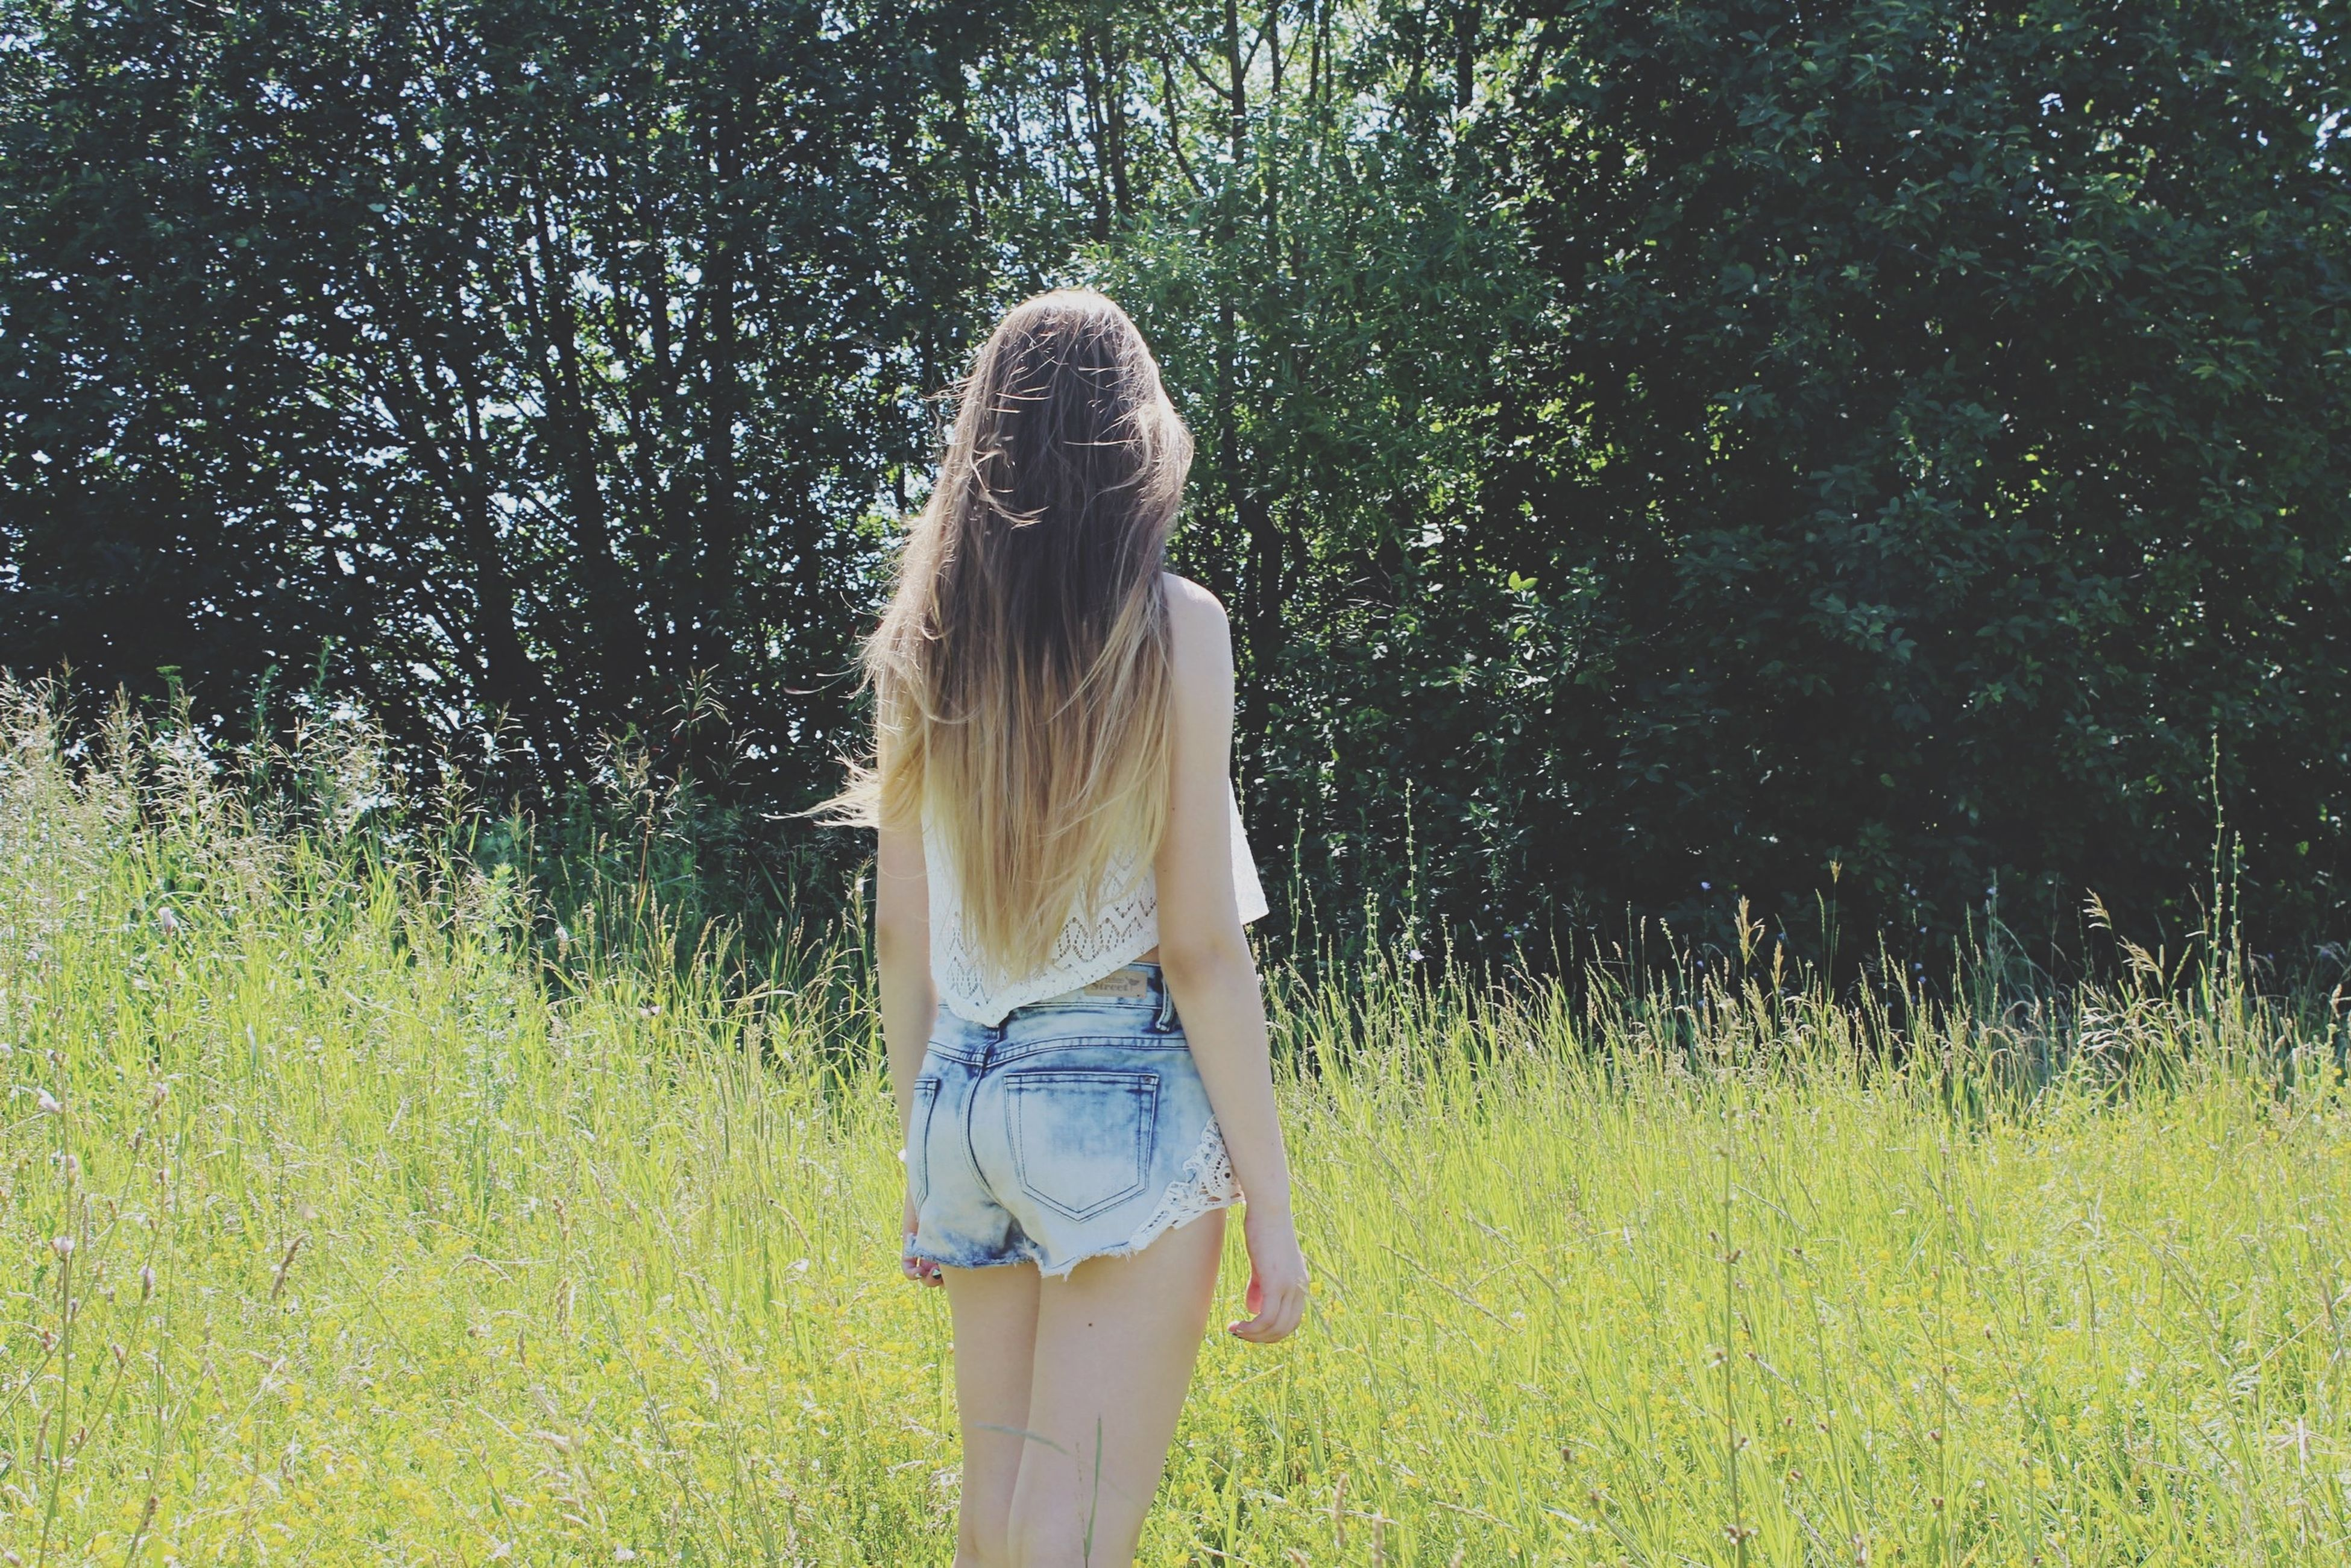 grass, lifestyles, young women, standing, leisure activity, long hair, casual clothing, full length, young adult, field, three quarter length, rear view, tree, person, grassy, plant, nature